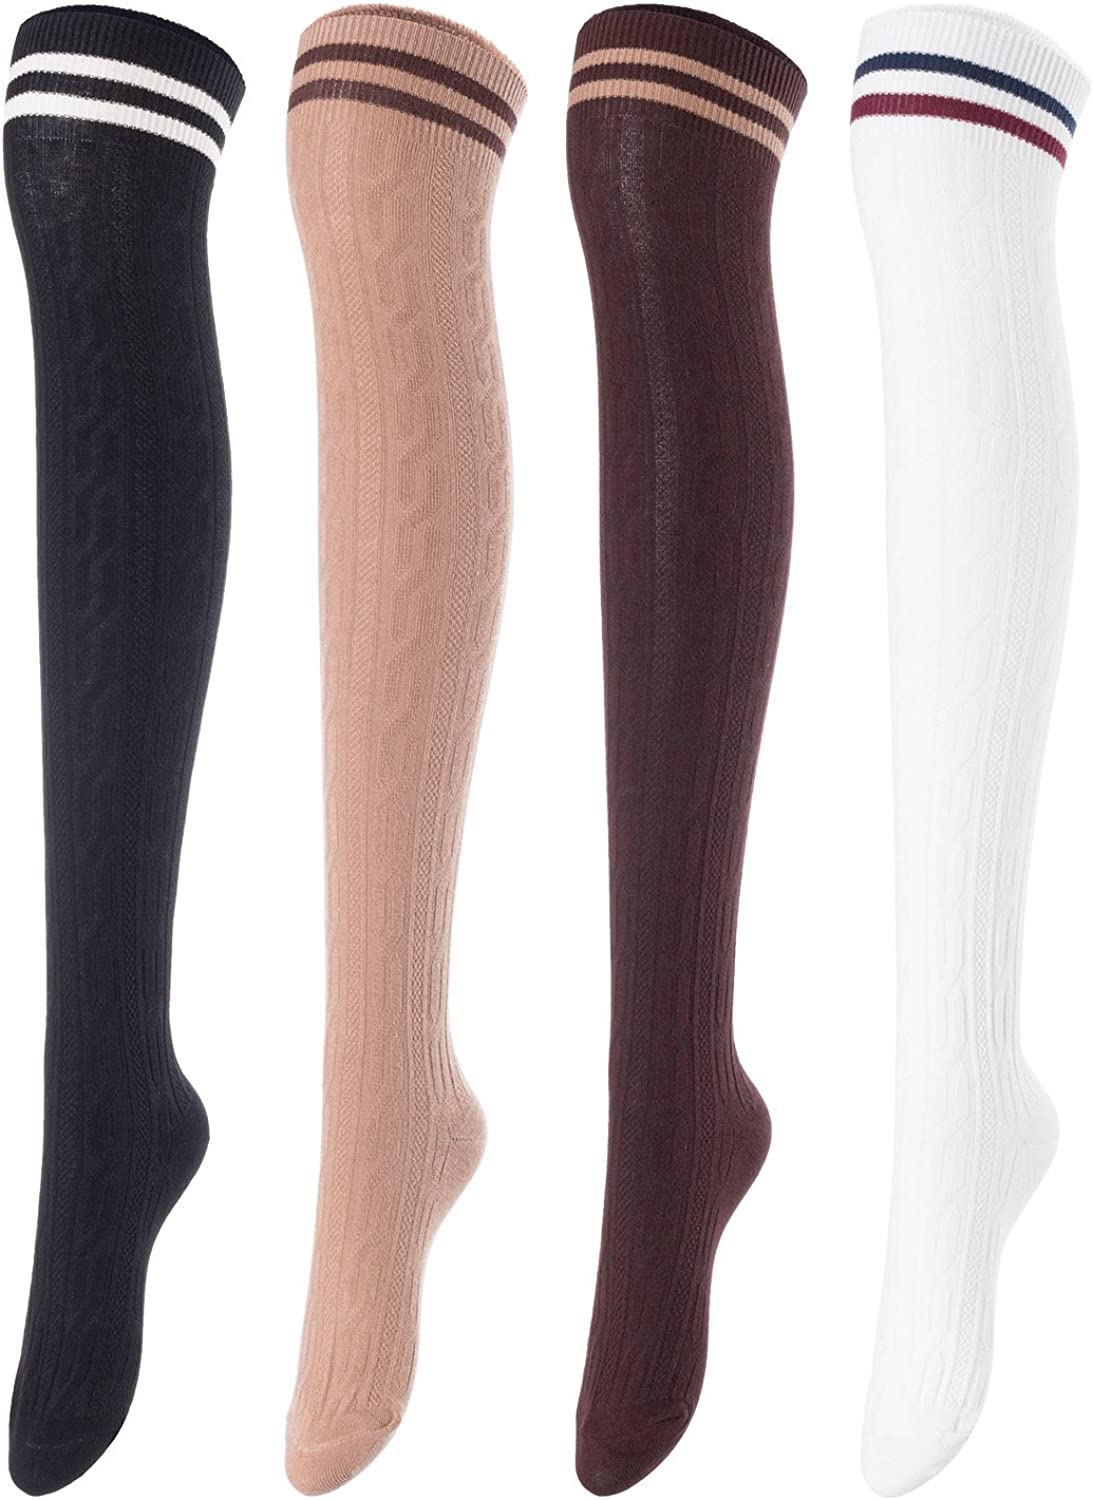 Lian LifeStyle Womens 4 Pairs Thigh High Cotton Socks Size 6-9 LW1023